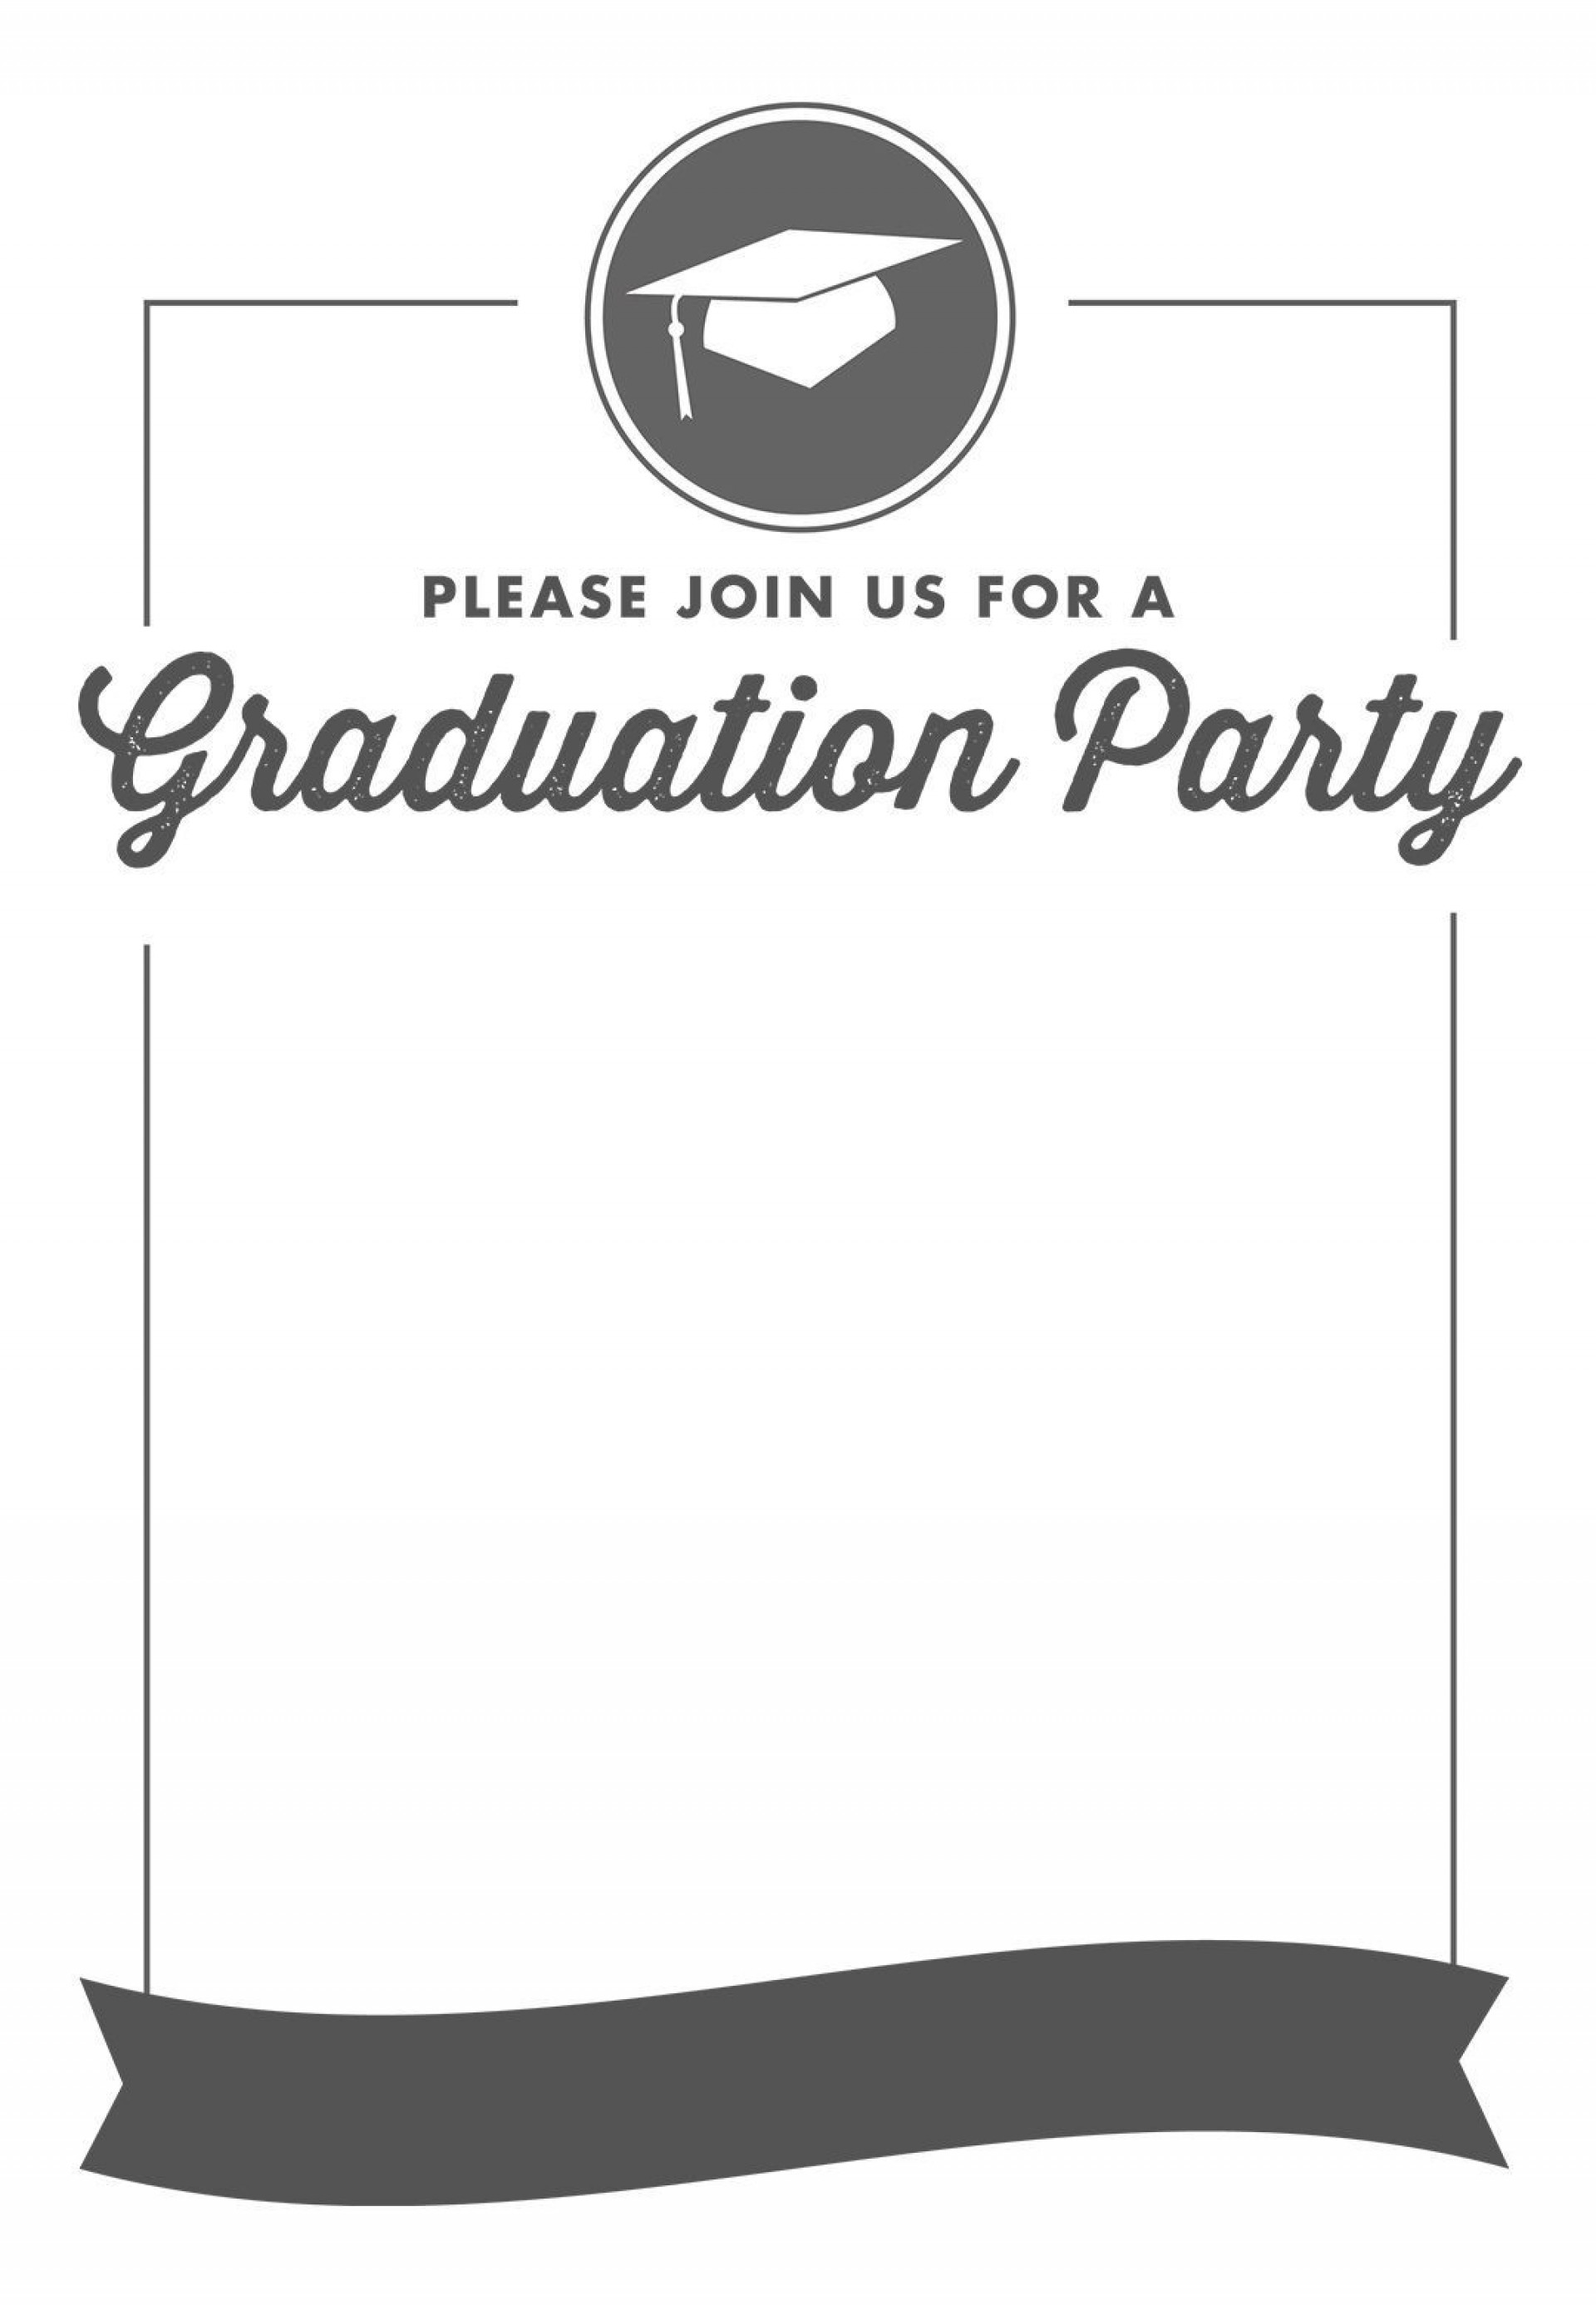 002 Unbelievable Free Graduation Invitation Template Printable High Resolution  Party For Word Preschool1920